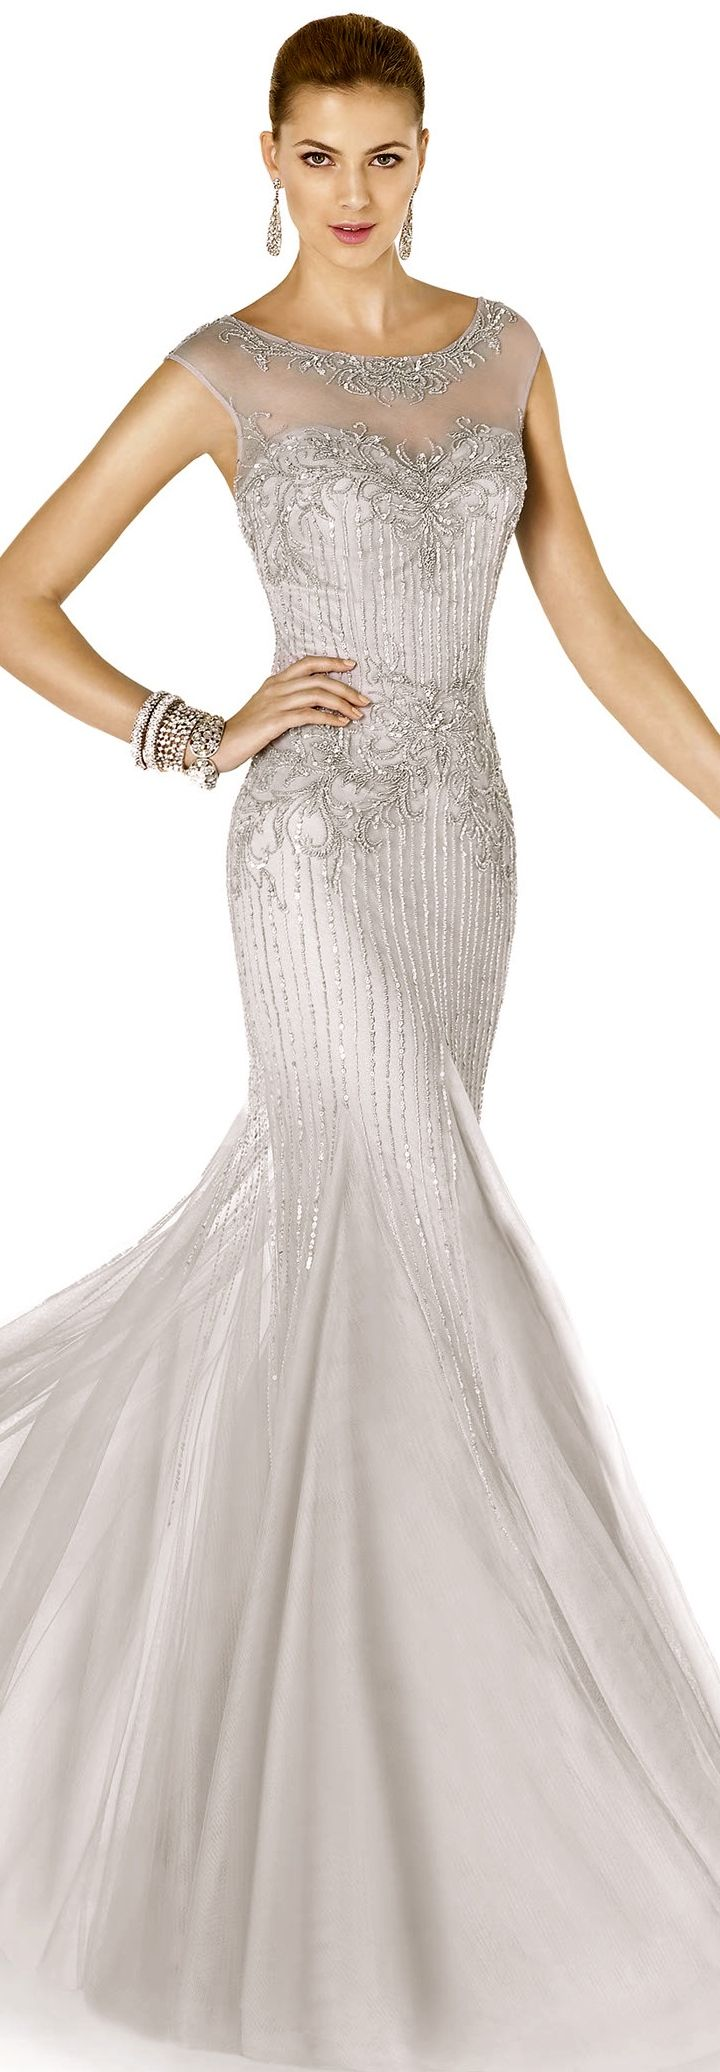 Pronovias Cocktail Collection 2015 Mother of the Bride!!! Elenor